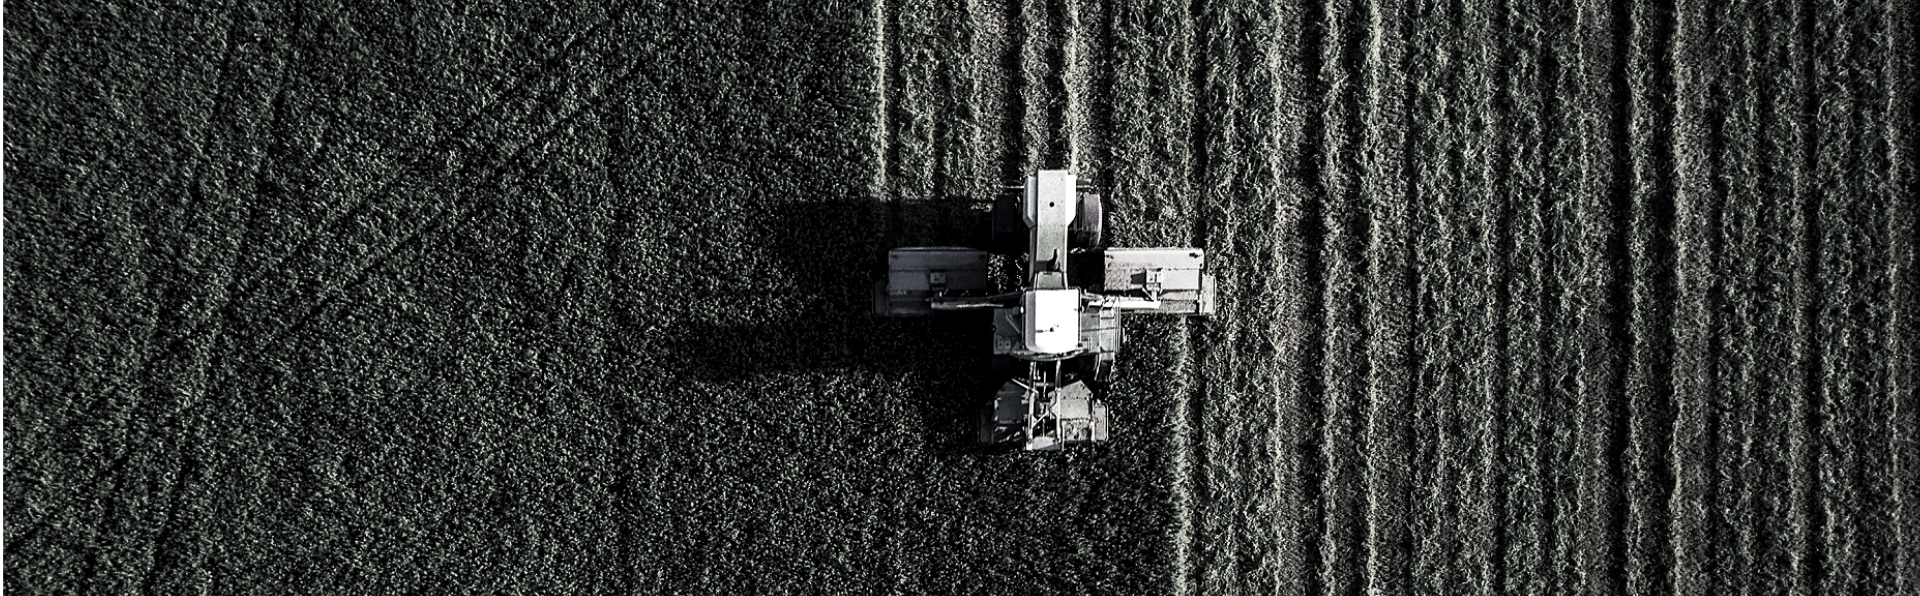 aerial shot of harvesting a field